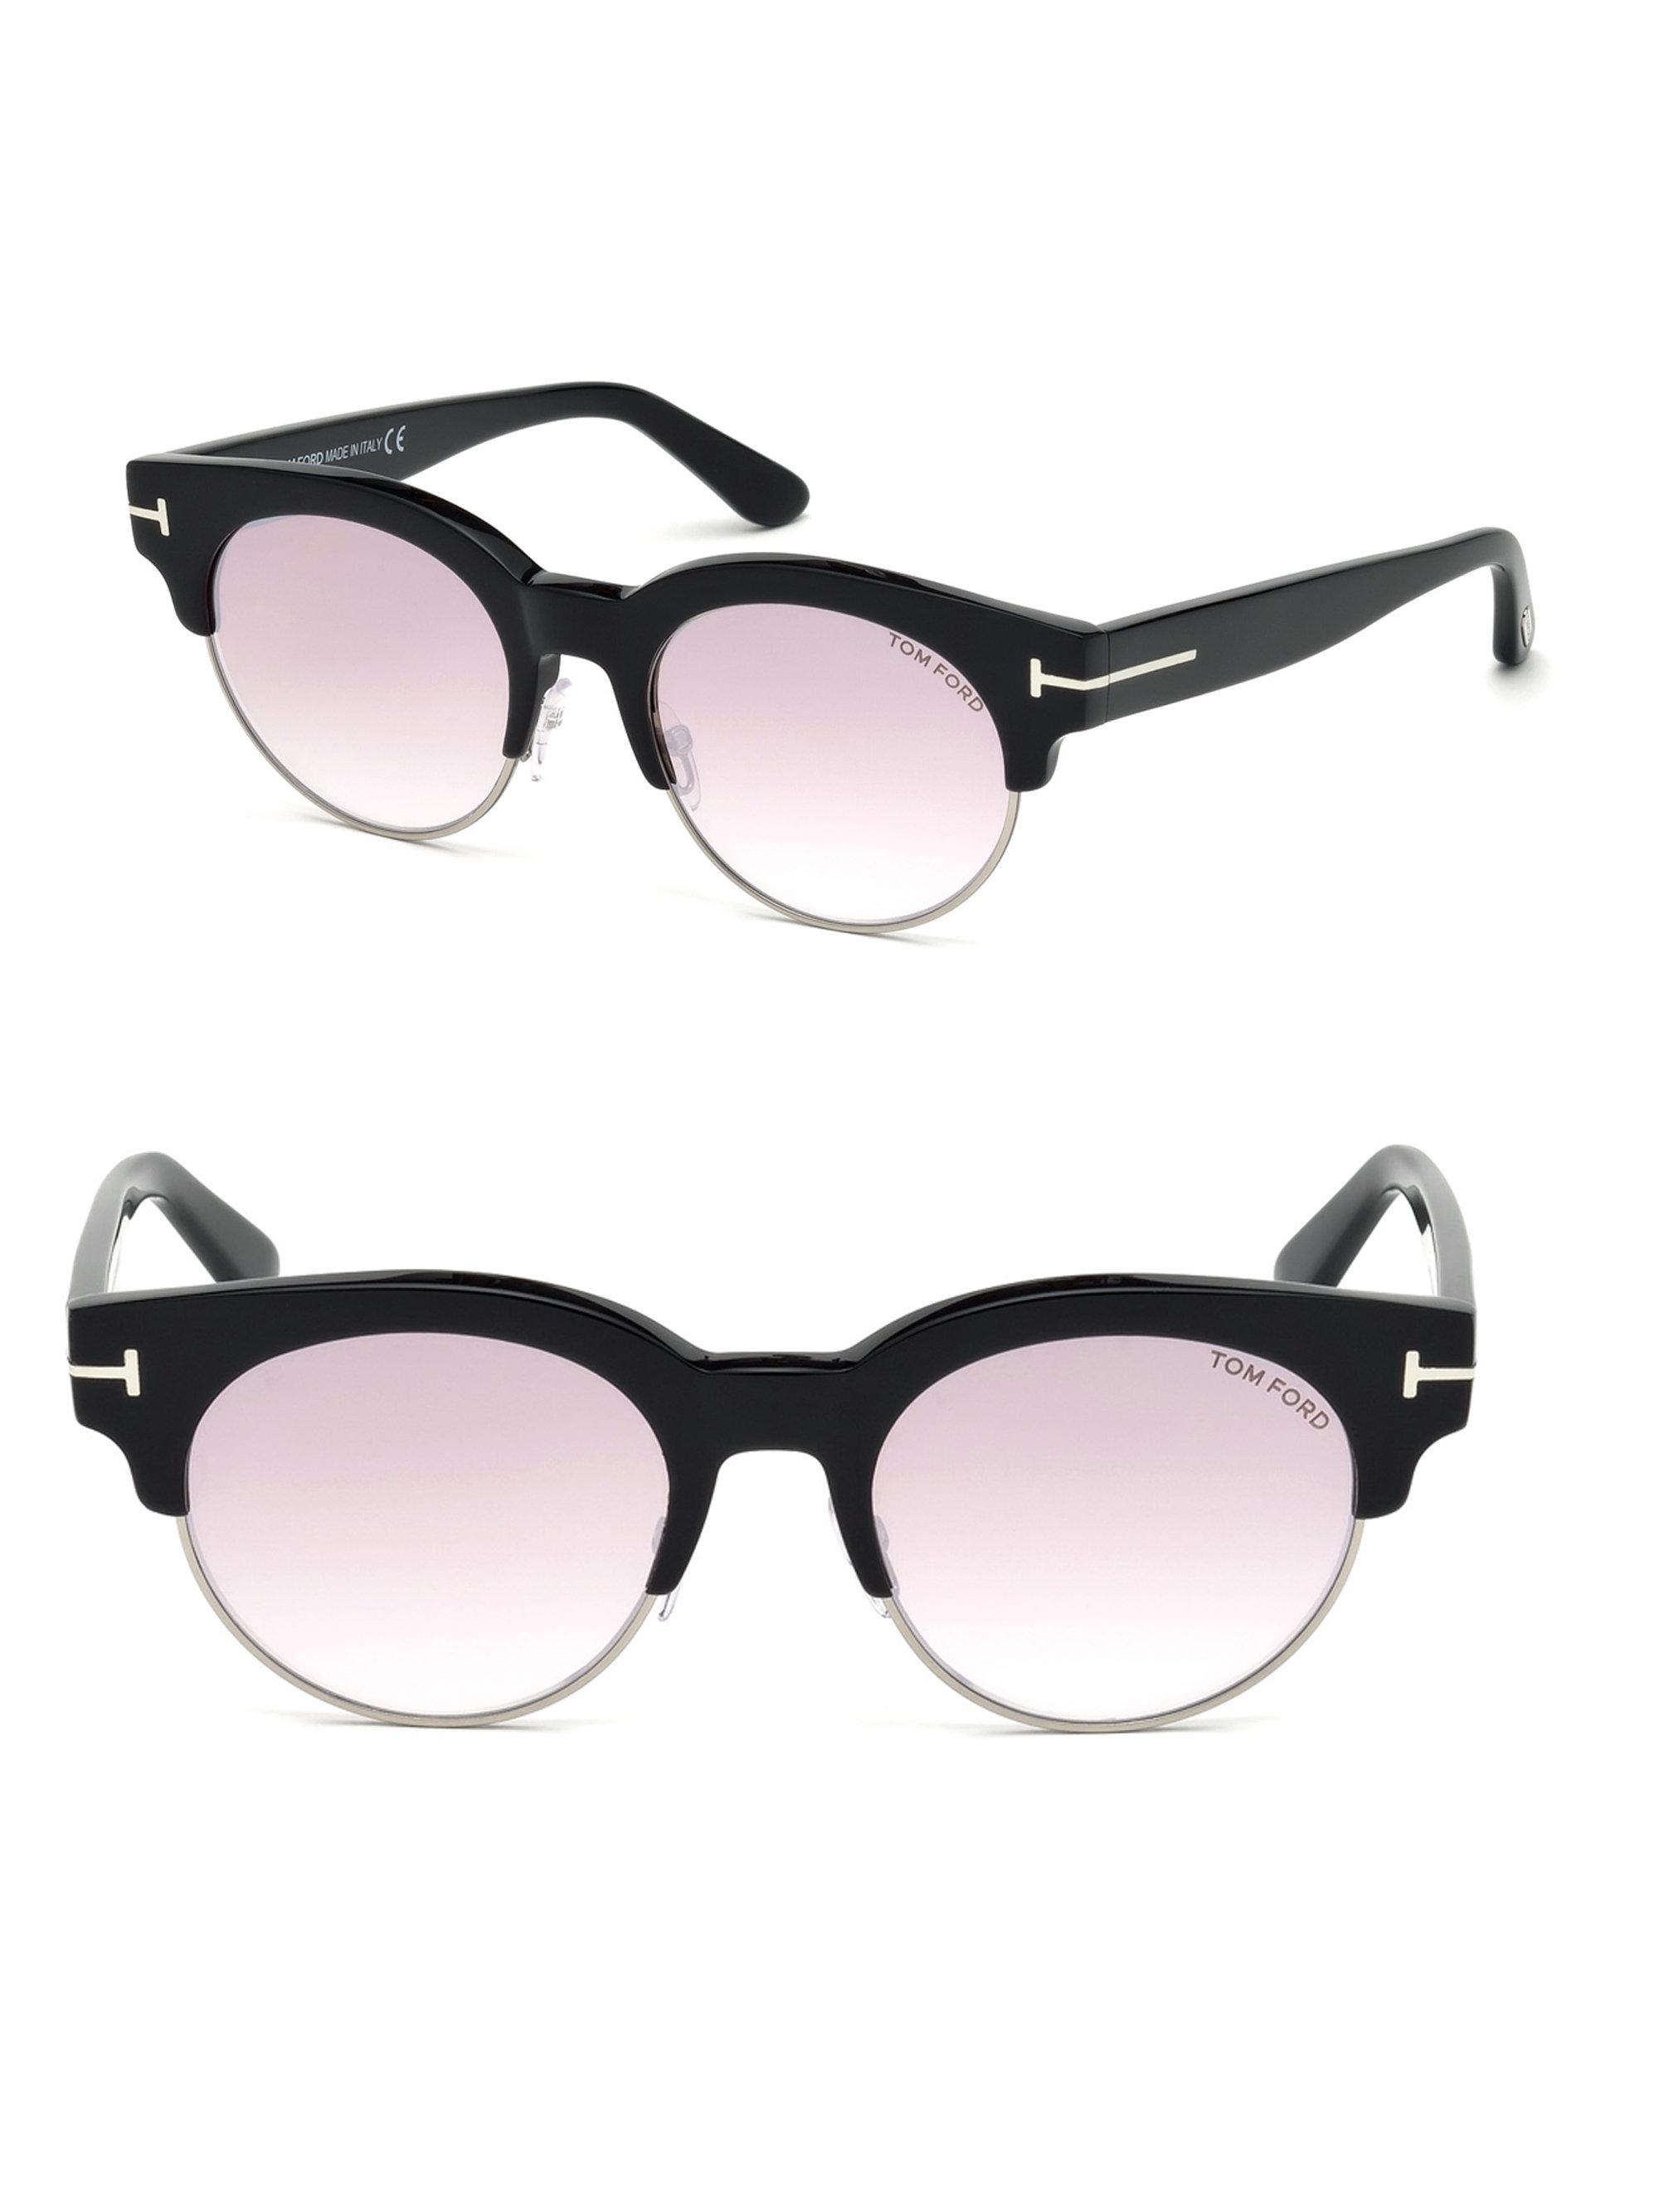 22fdd3ad708 Lyst - Tom Ford Henri 52mm Round Cat-eye Sunglasses in Black